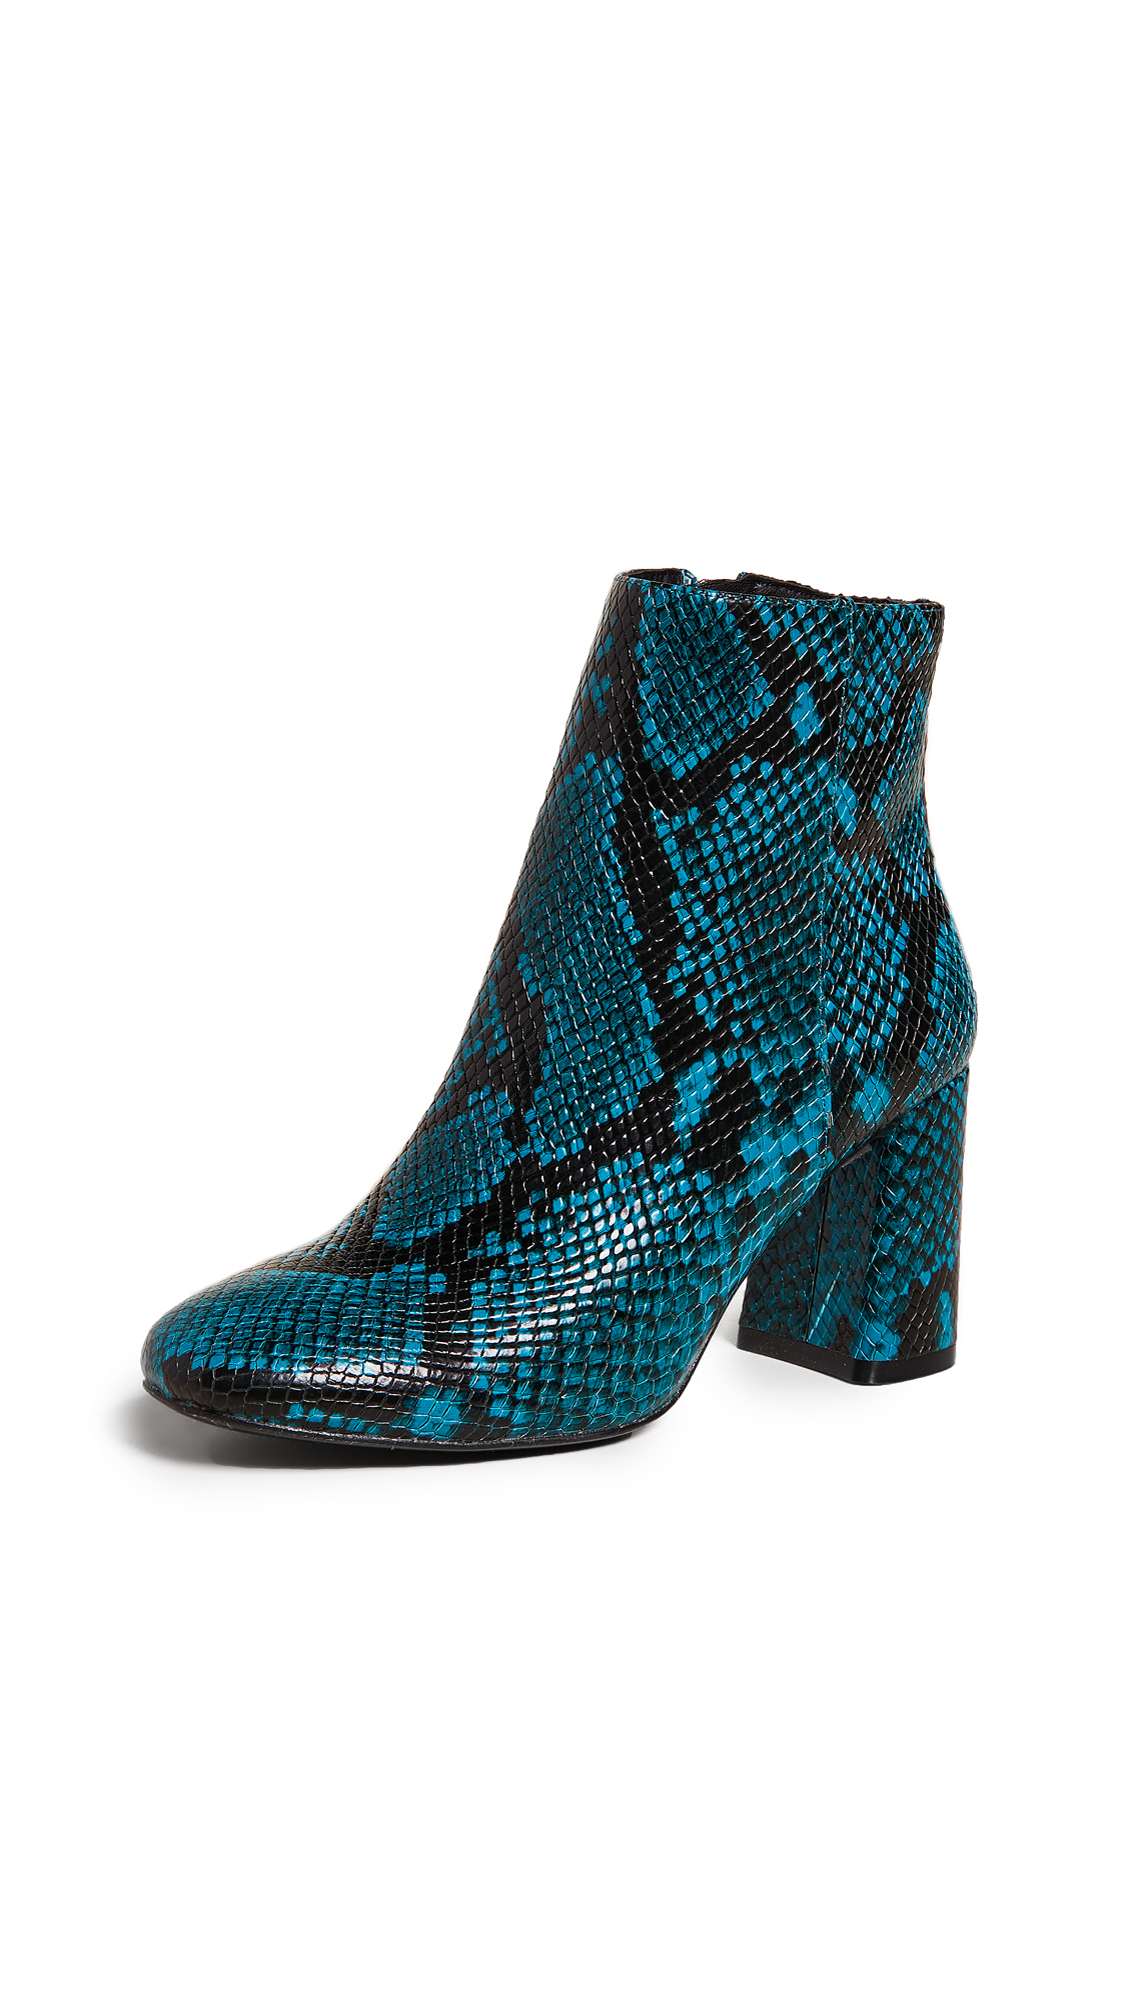 Dobrey Snake-Print Zip Booties in Teal